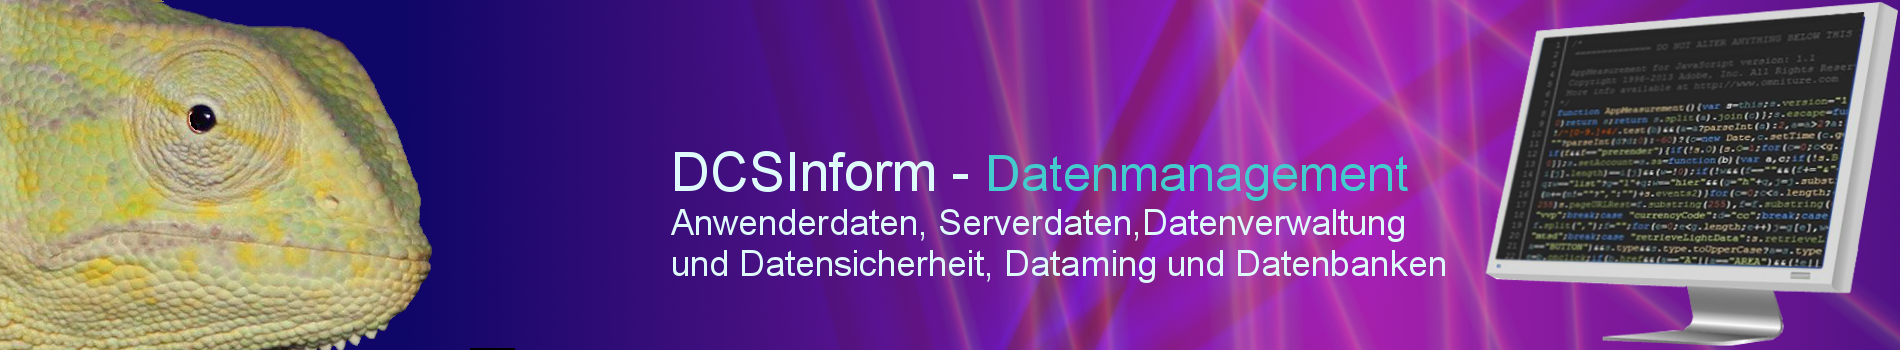 DCSInform - Datenmanagement